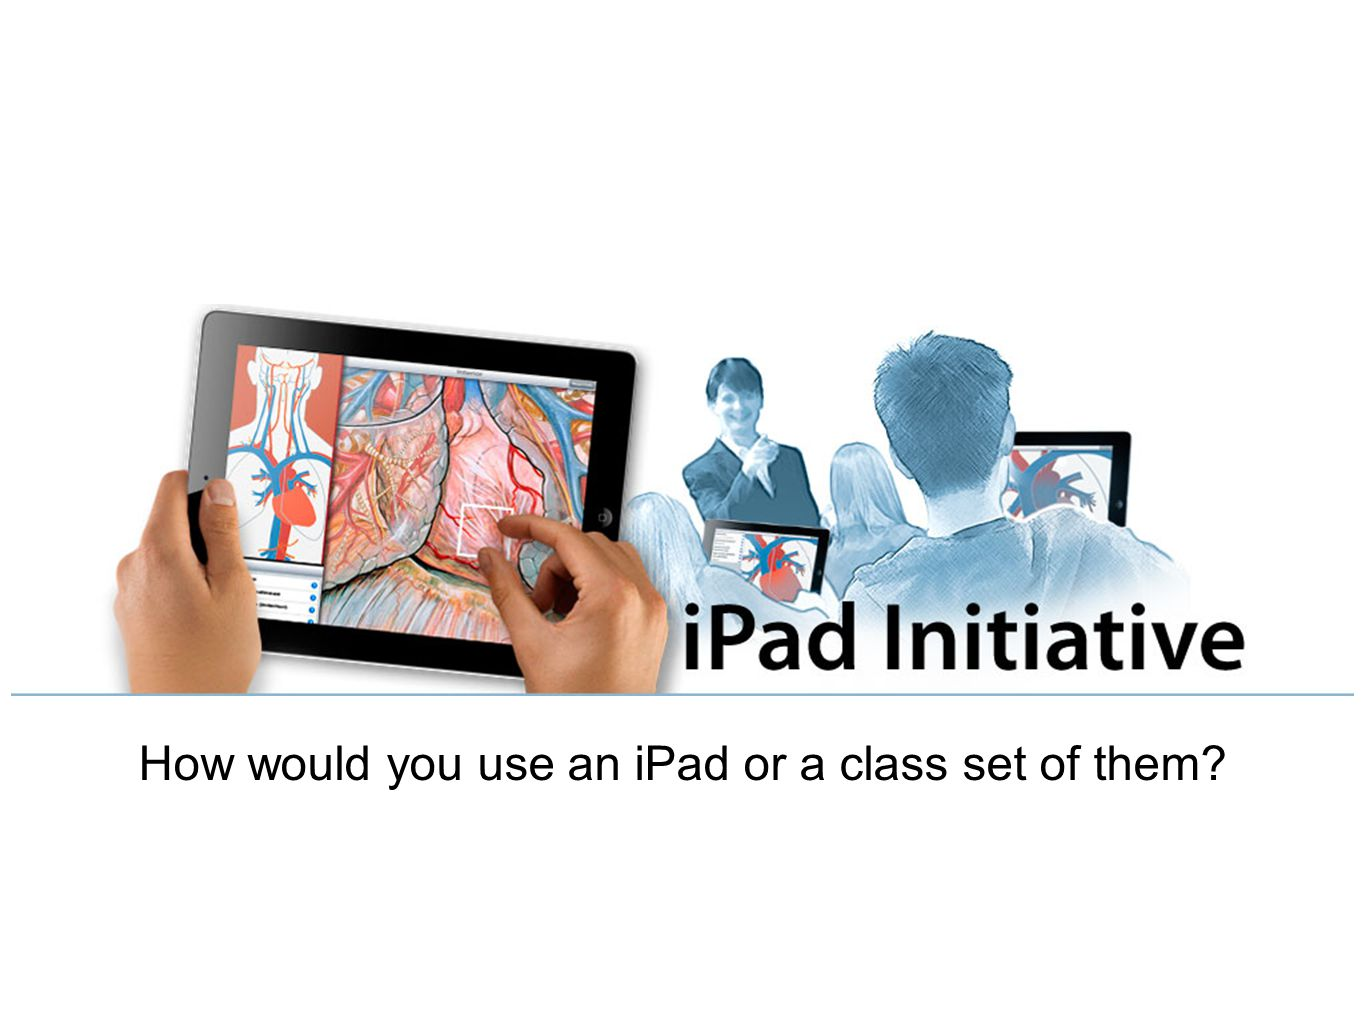 How would you use an iPad or a class set of them